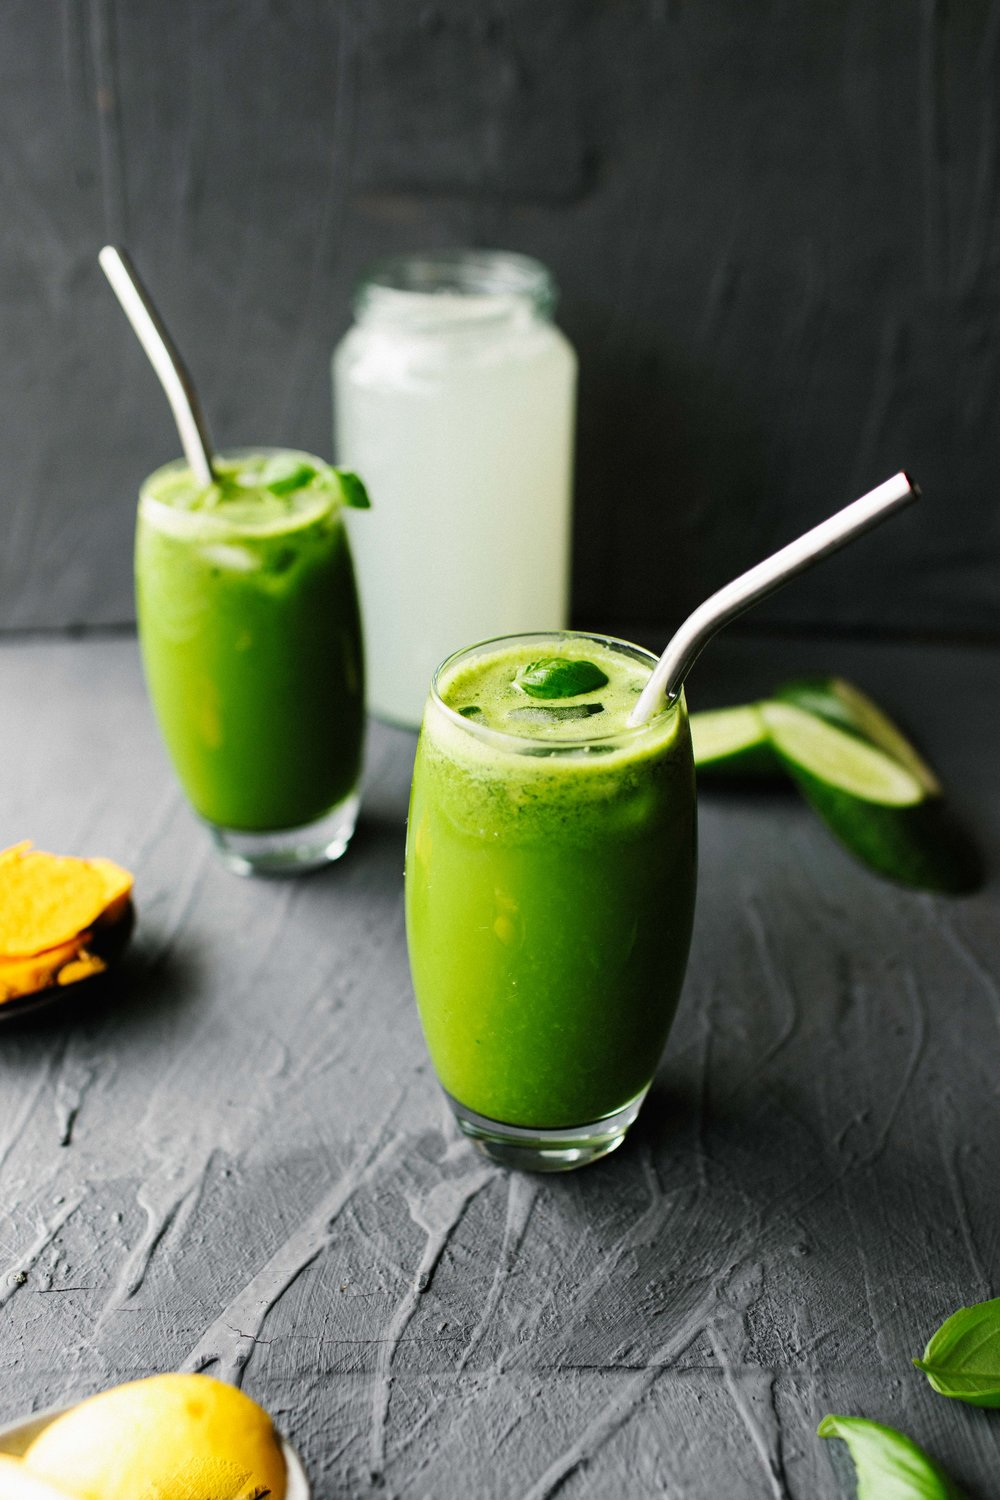 Kidney_Cleansing_Green_Juice_Reallifeofpie1 (1 of 1).jpg